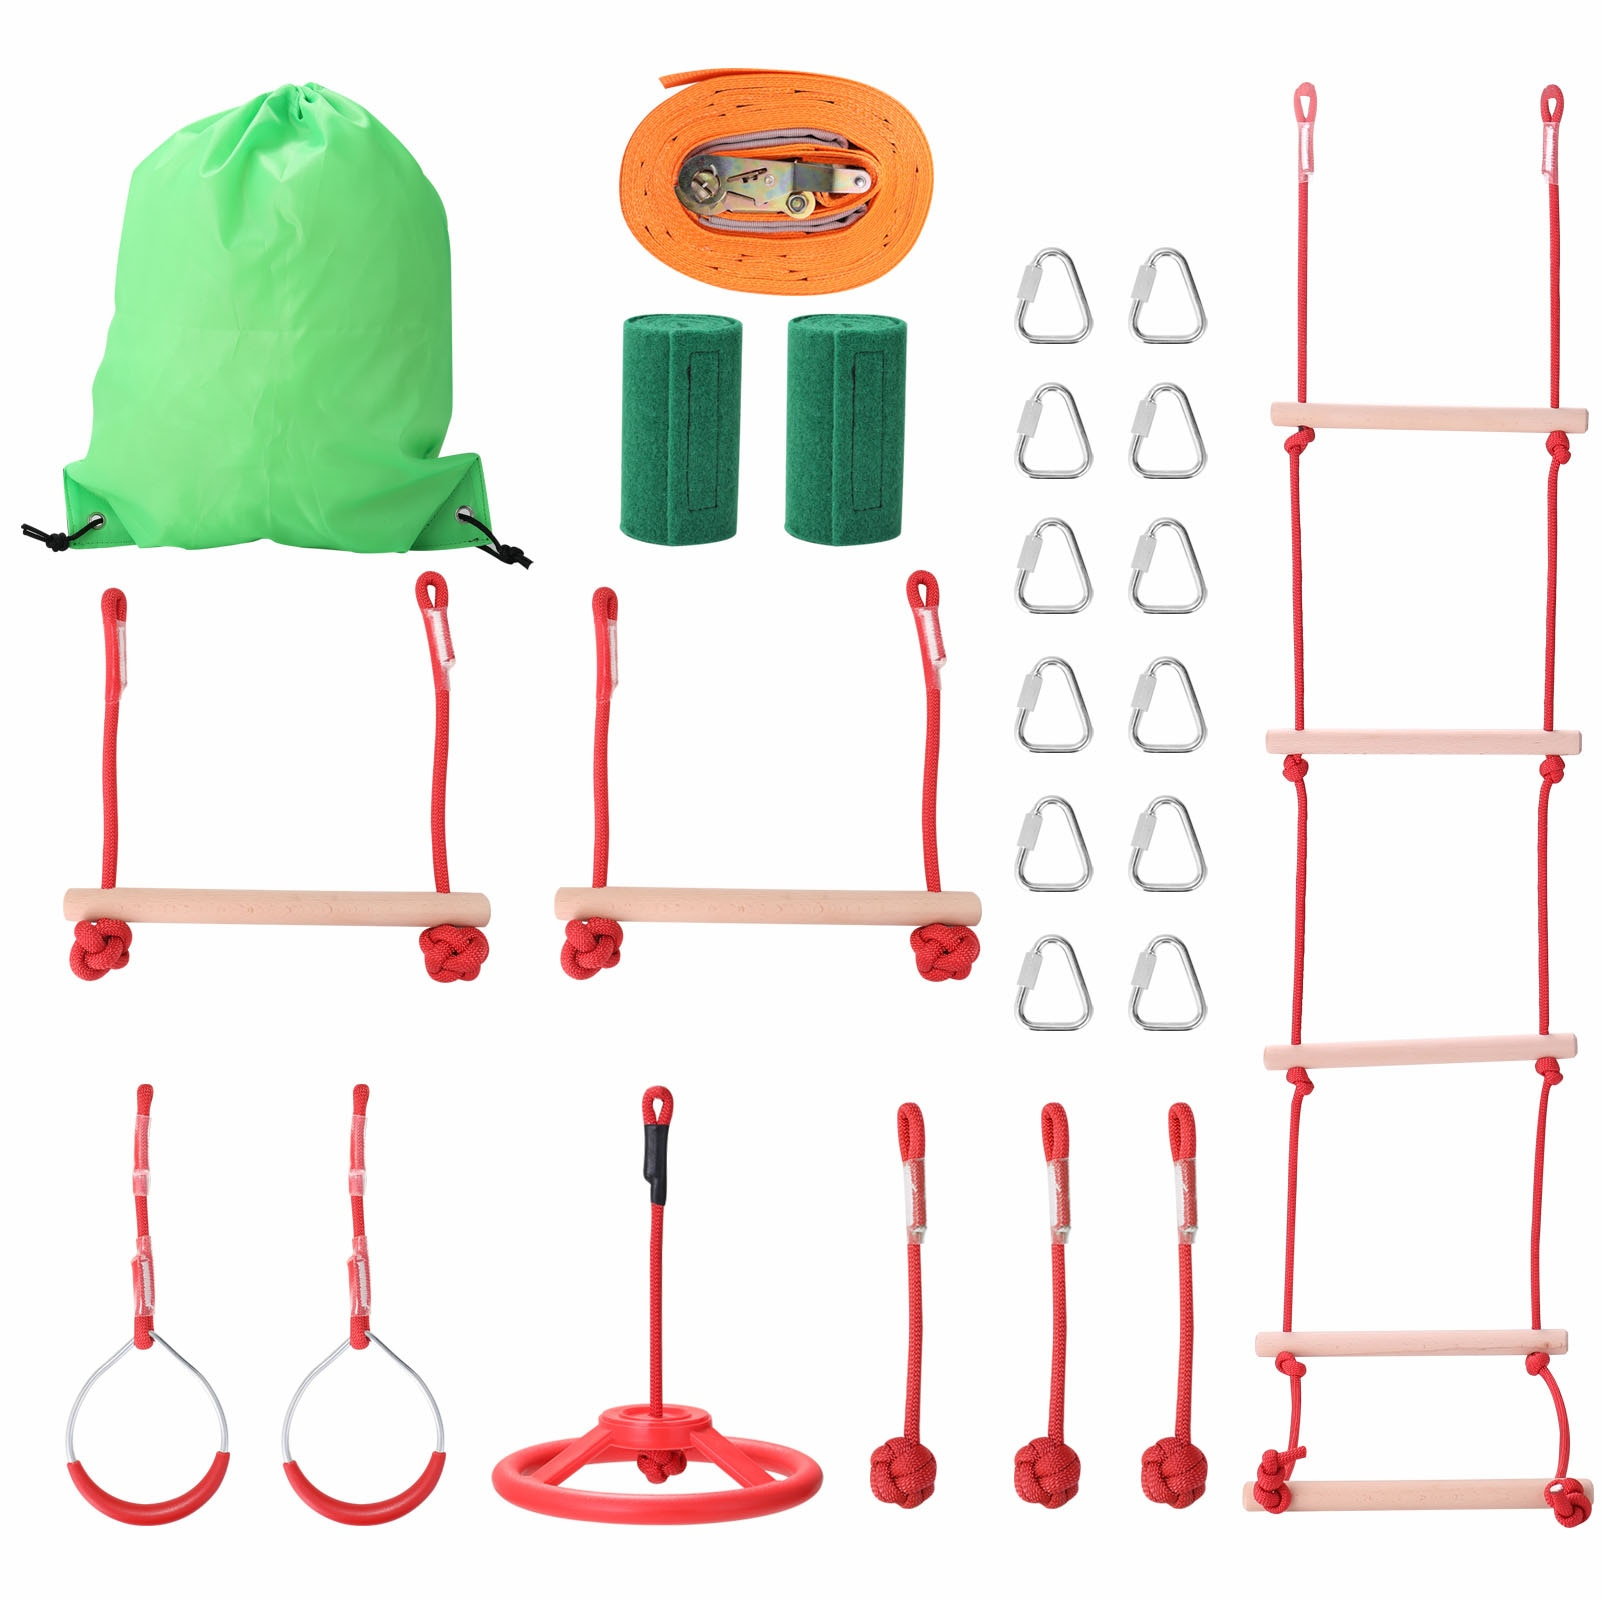 outdoor-children-climbing-rope-exercise-line-obstacle-training-accessories-kids-camping-sports-equipment